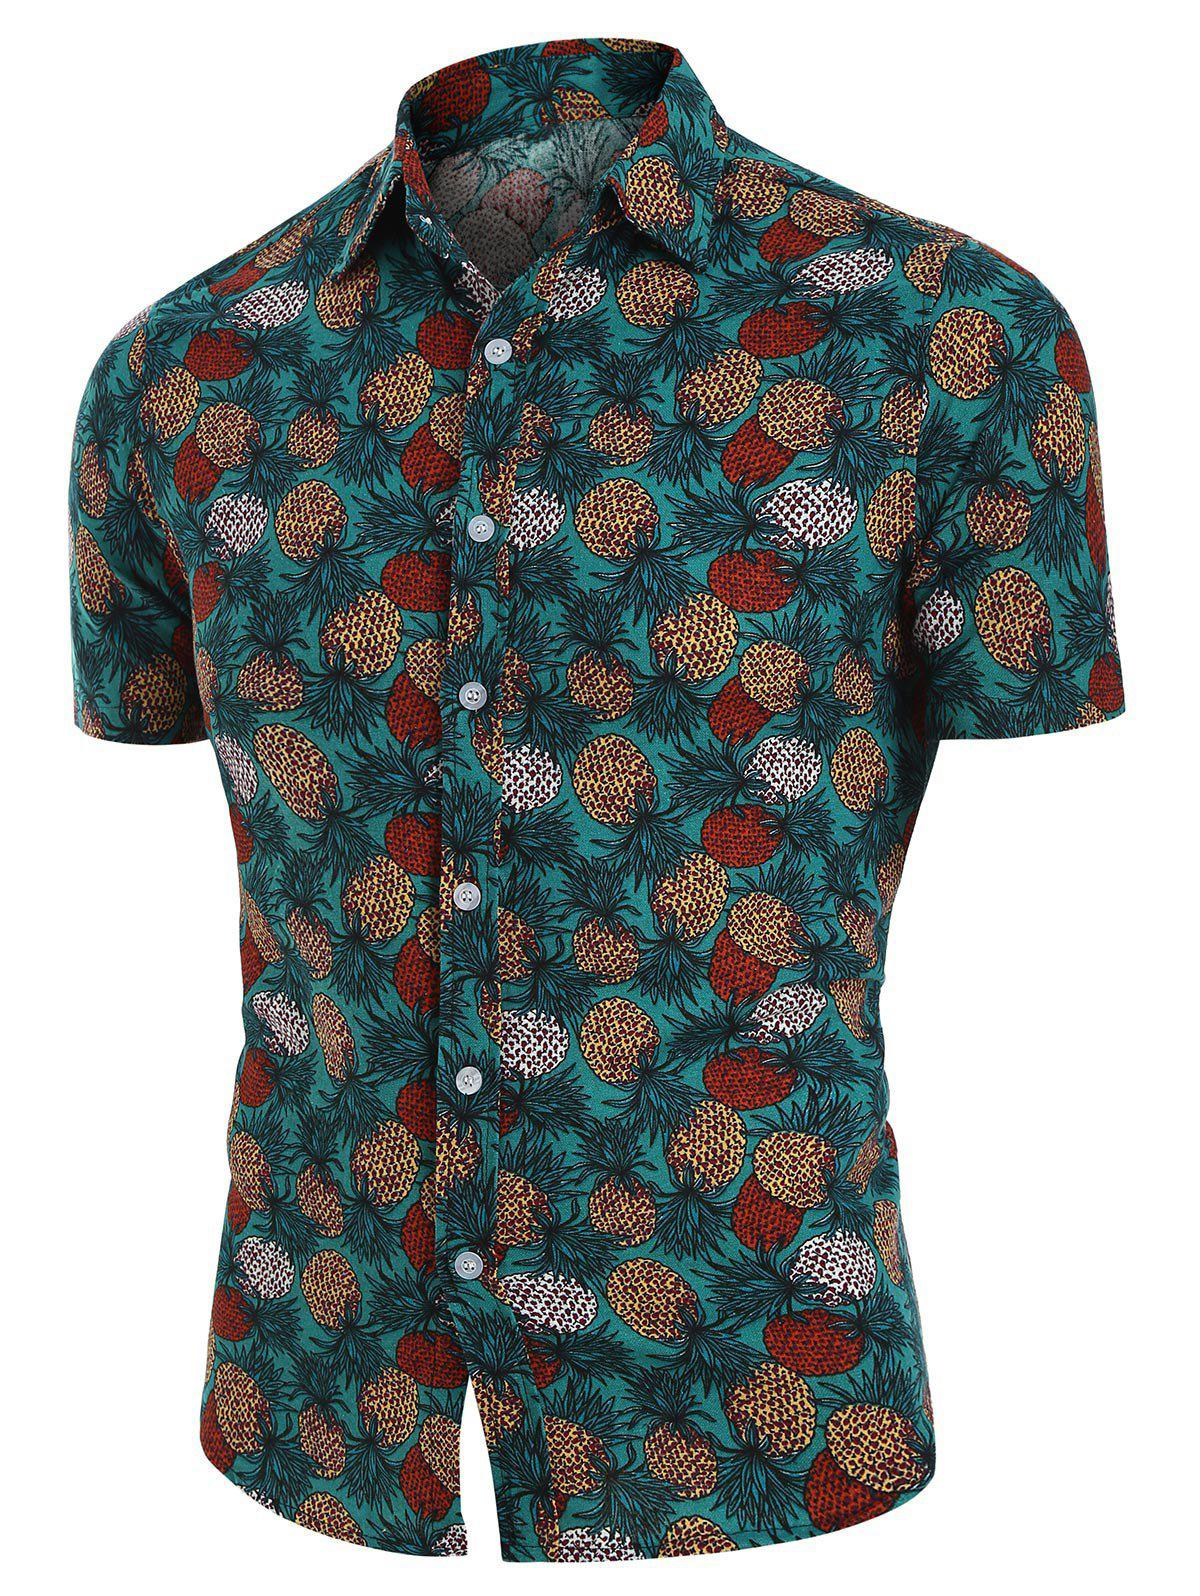 Affordable Tropical Pineapple Print Button Up Linen Shirt